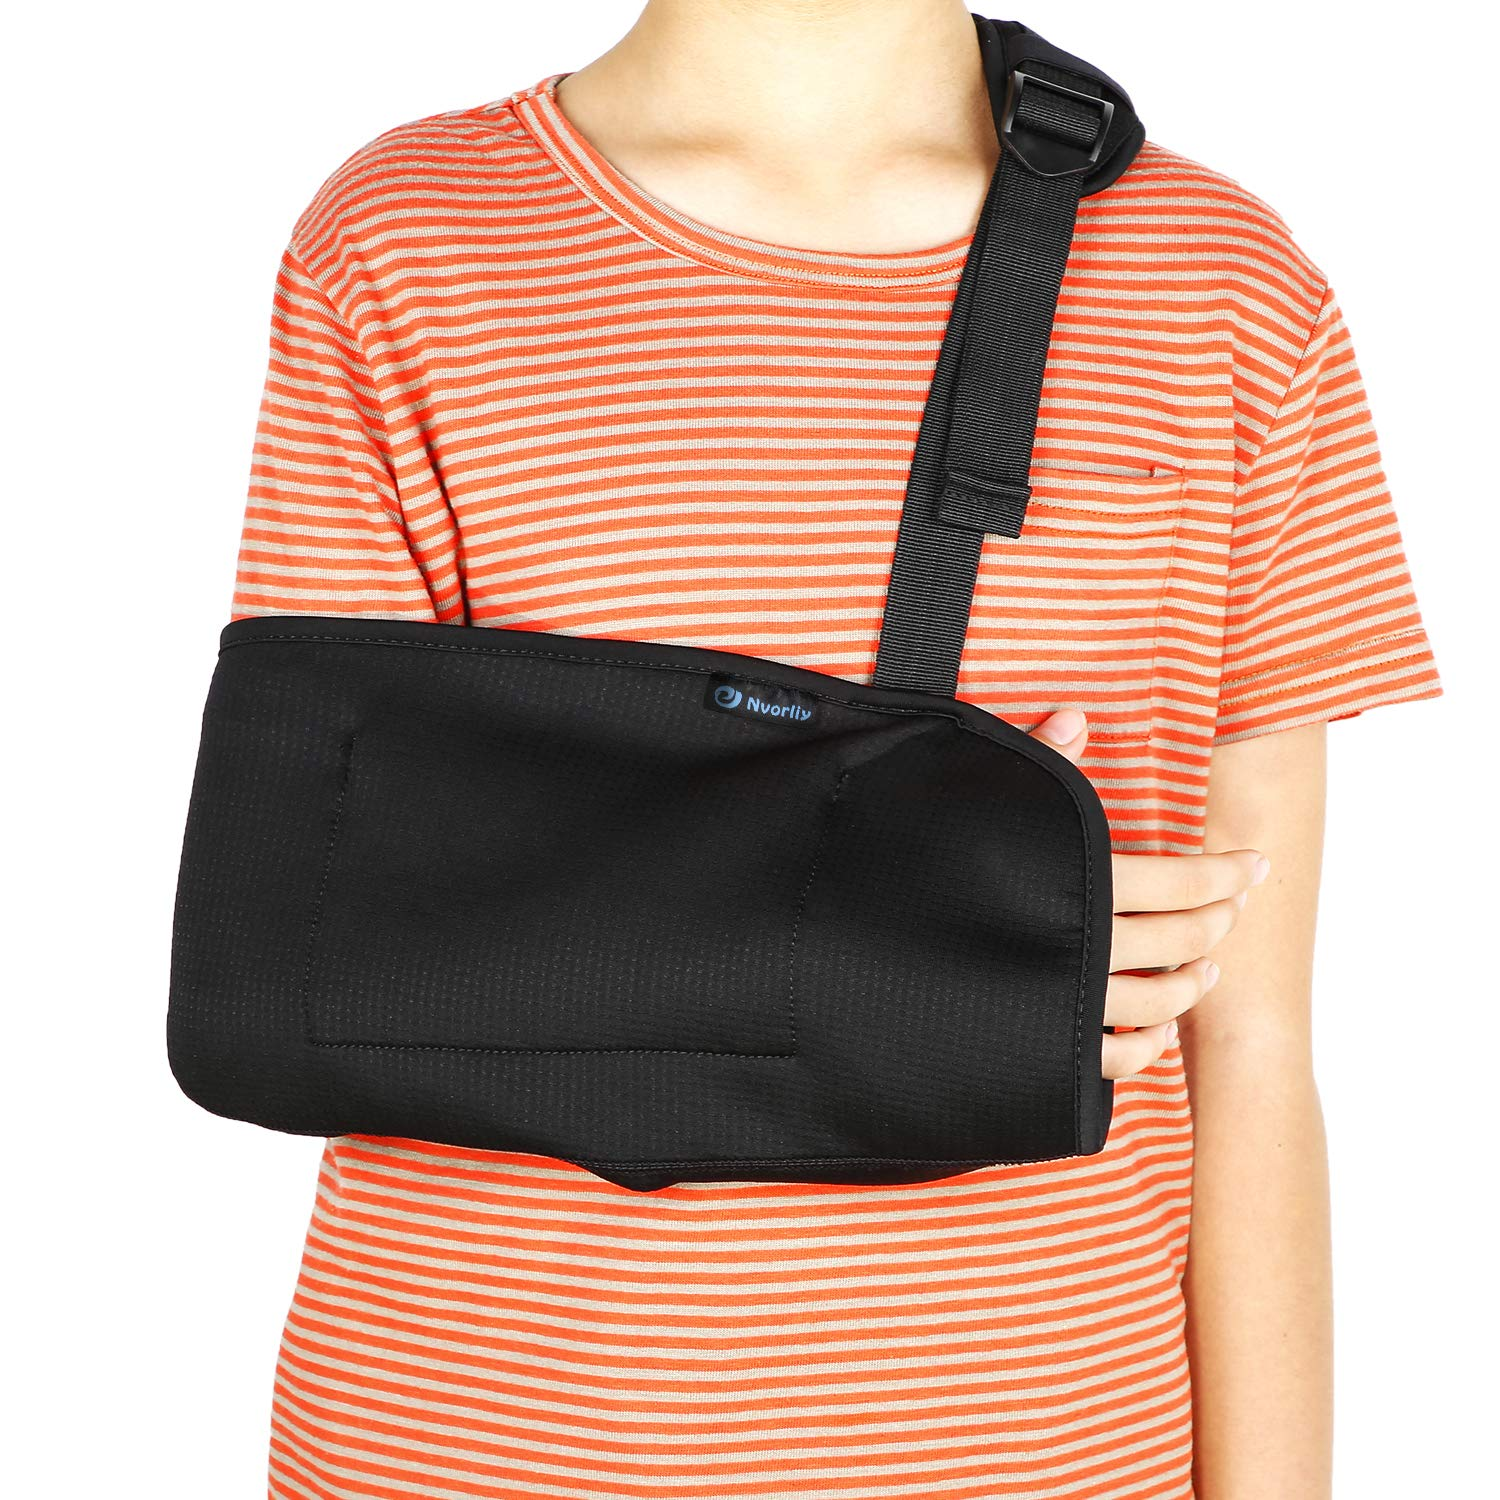 Child Arm Sling, Pediatric & Toddlers Adjustable Shoulder Support Strap for Broken, Fractured Wrist, Rotator Cuff Full Soft Immobilizer Fits Kids, Youth, Teens, Left or Right Arm by Nvorliy